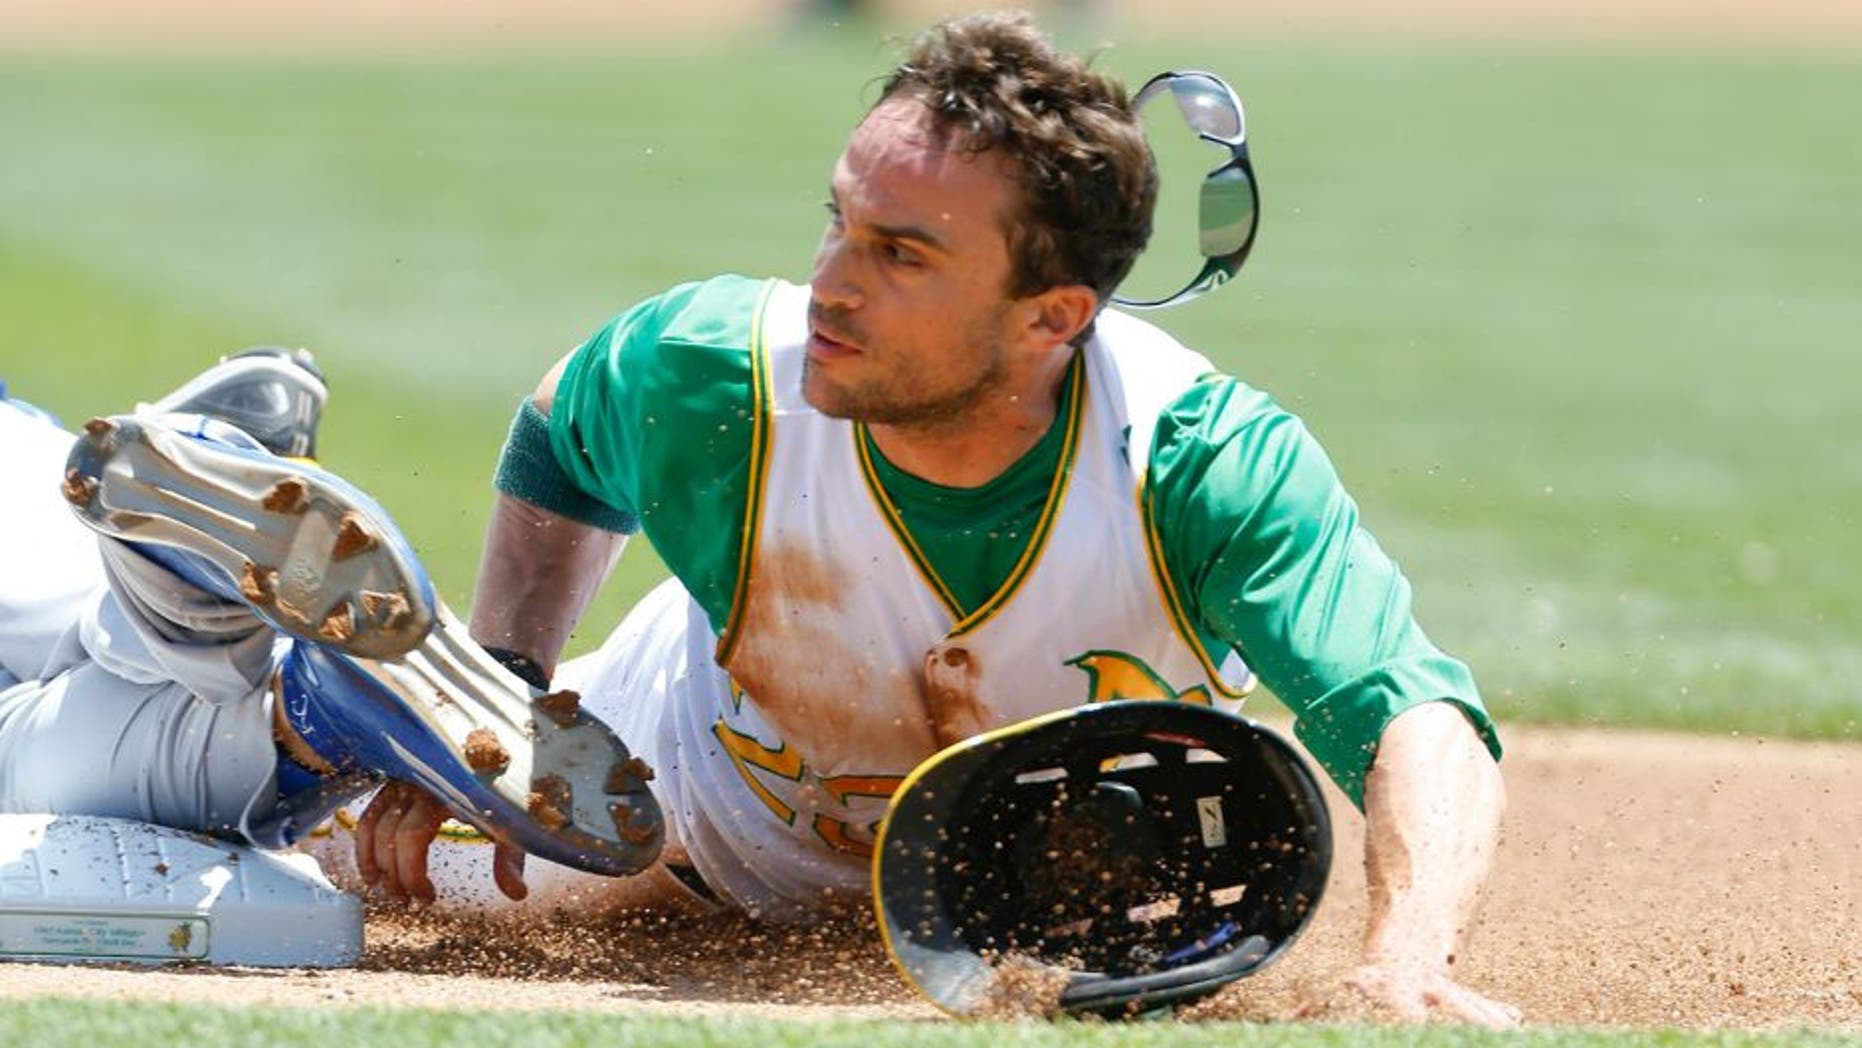 OAKLAND, CA - JUNE 27: Sam Fuld #23 of the Oakland Athletics slides safely into third, on a triple, during the game against the Kansas City Royals at O.co Coliseum on June 27, 2015 in Oakland, California. The Royals defeated the Athletics 3-2. (Photo by Michael Zagaris/Oakland Athletics/Getty Images)